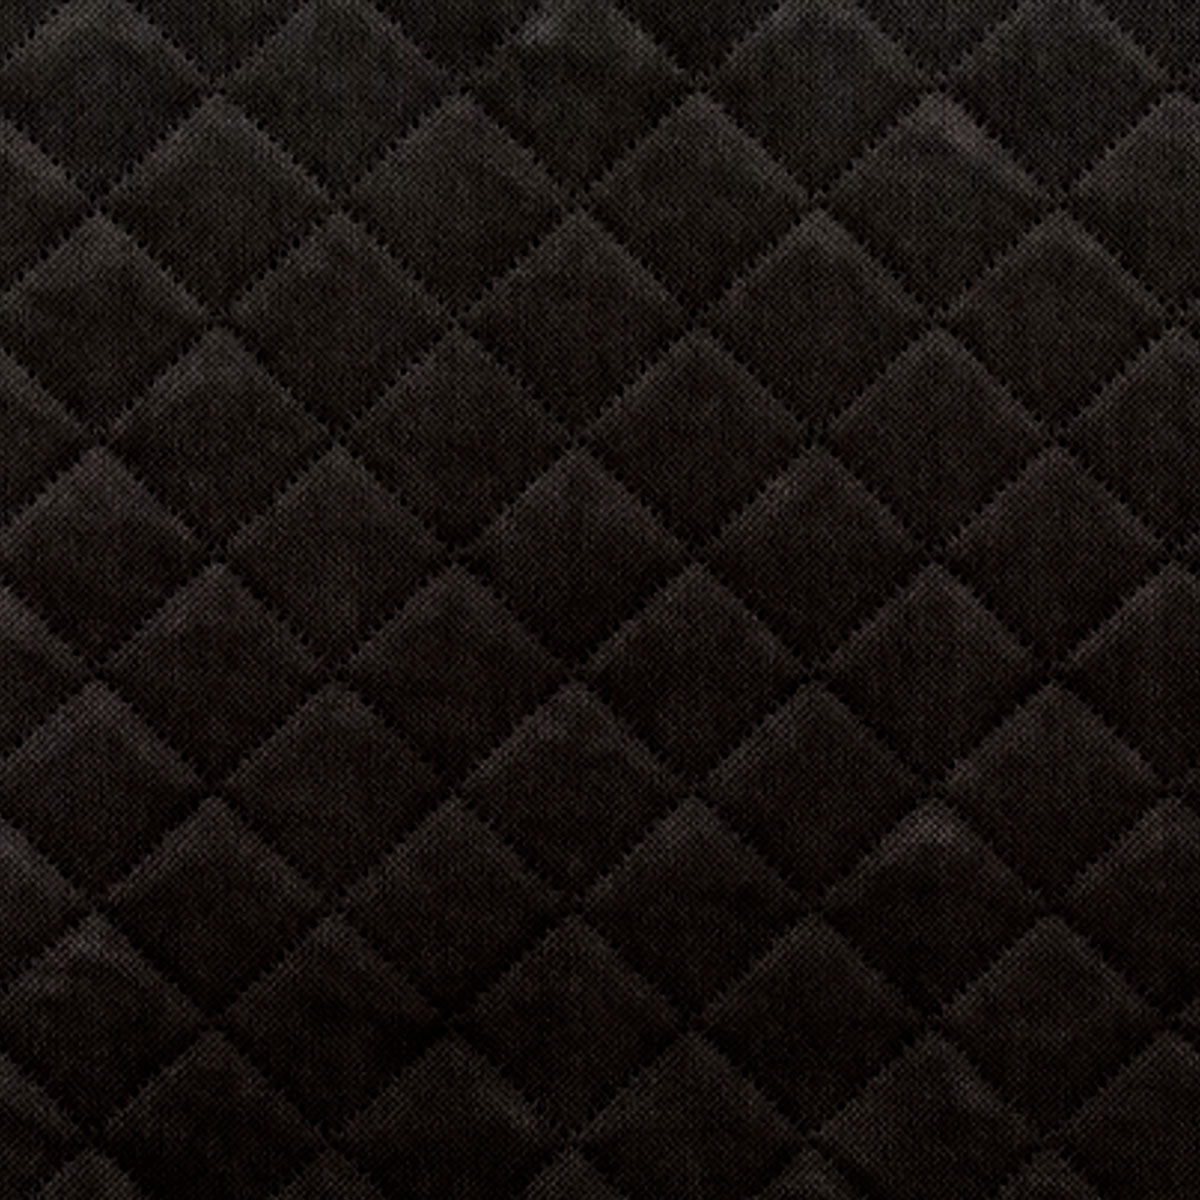 Fabric 13 - Quilted velvet Black